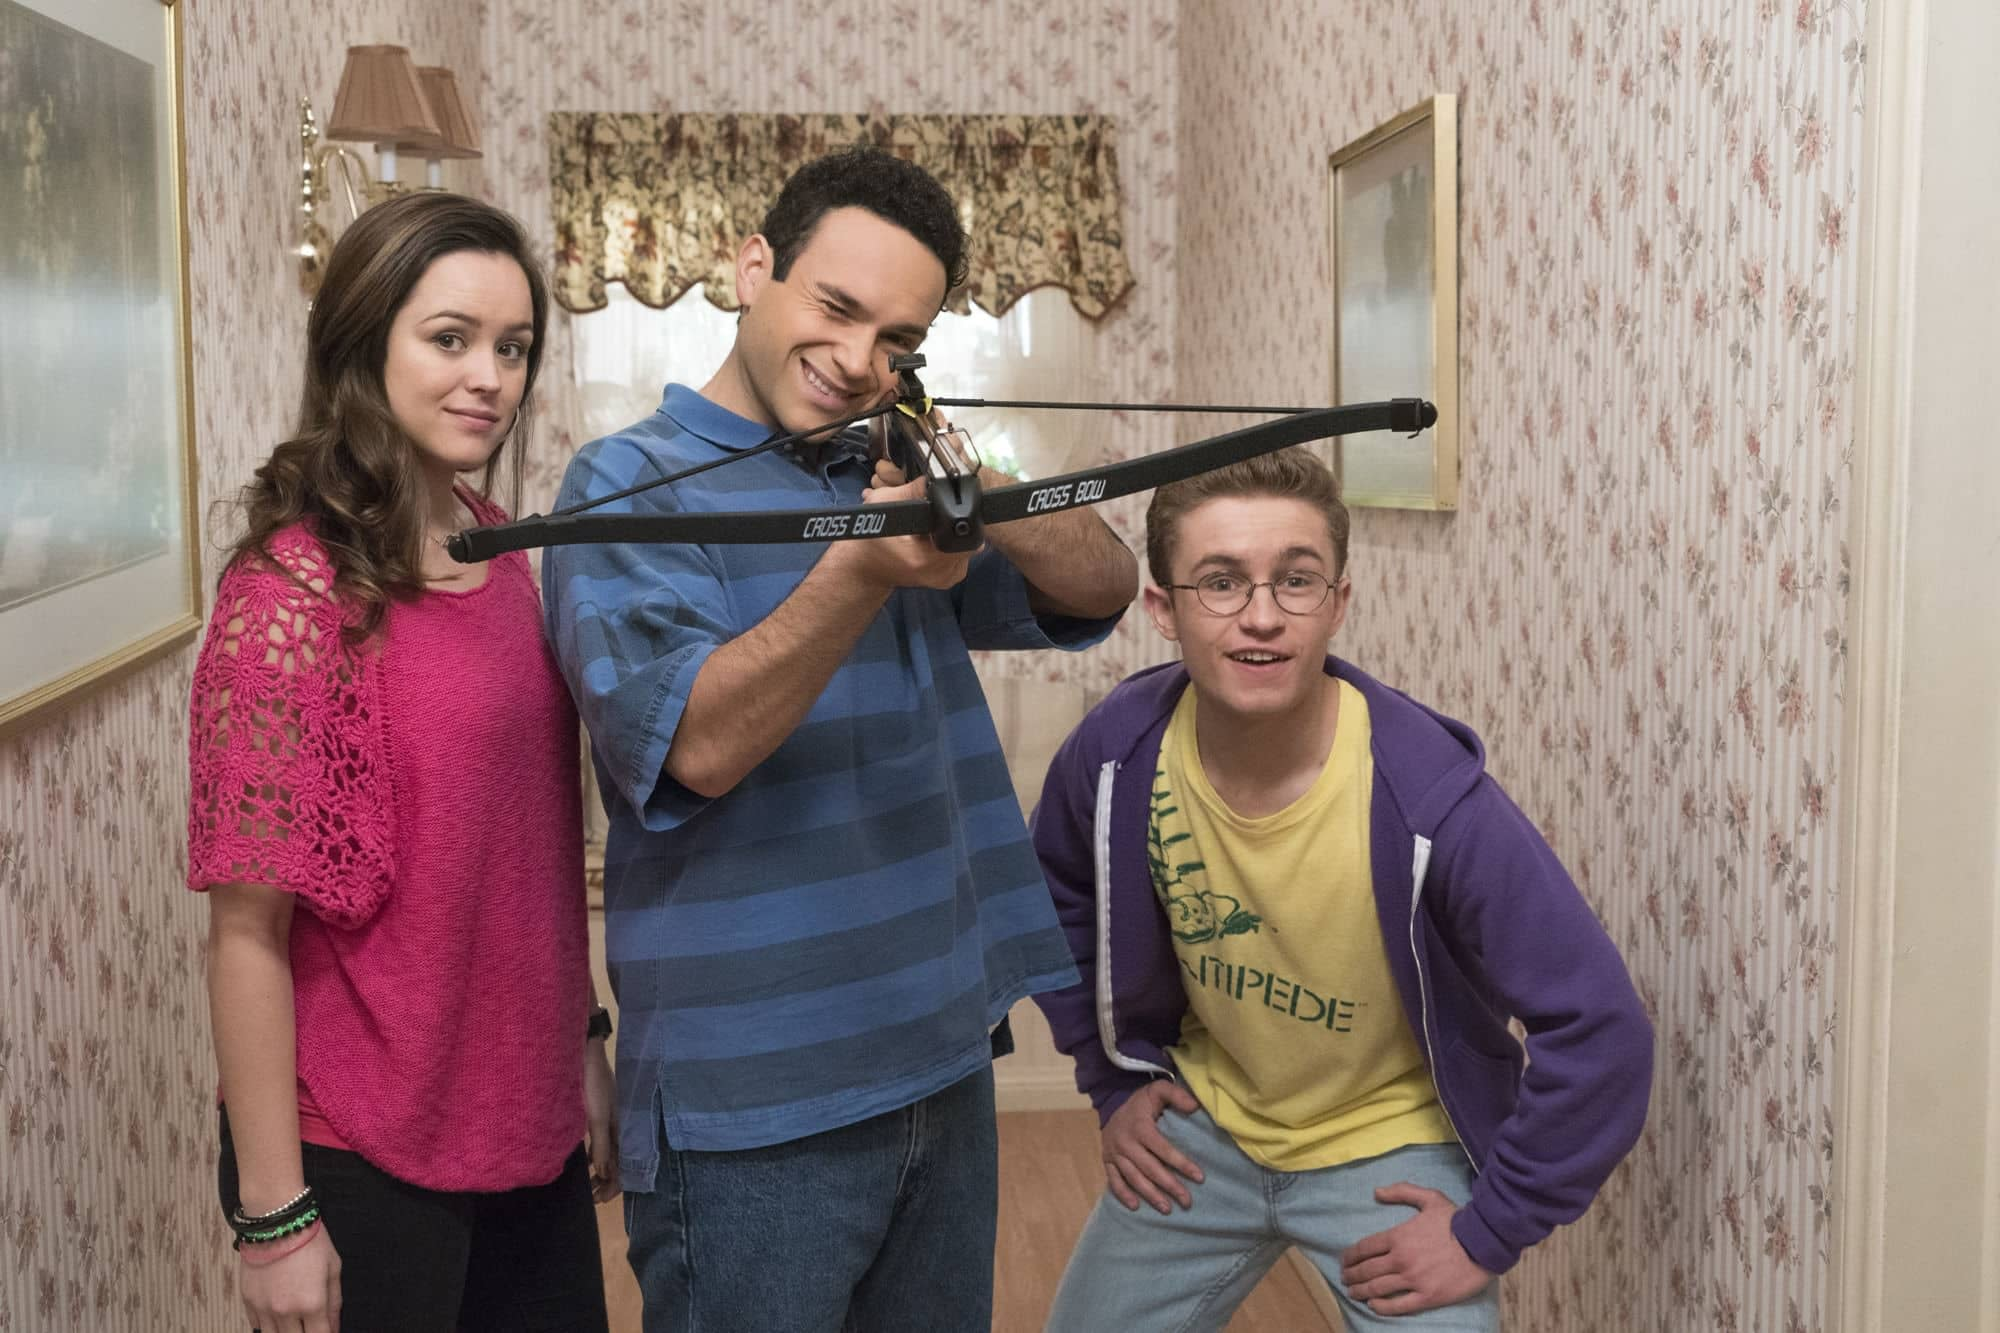 The Goldbergs Season 6 Our Perfect Strangers Image 2